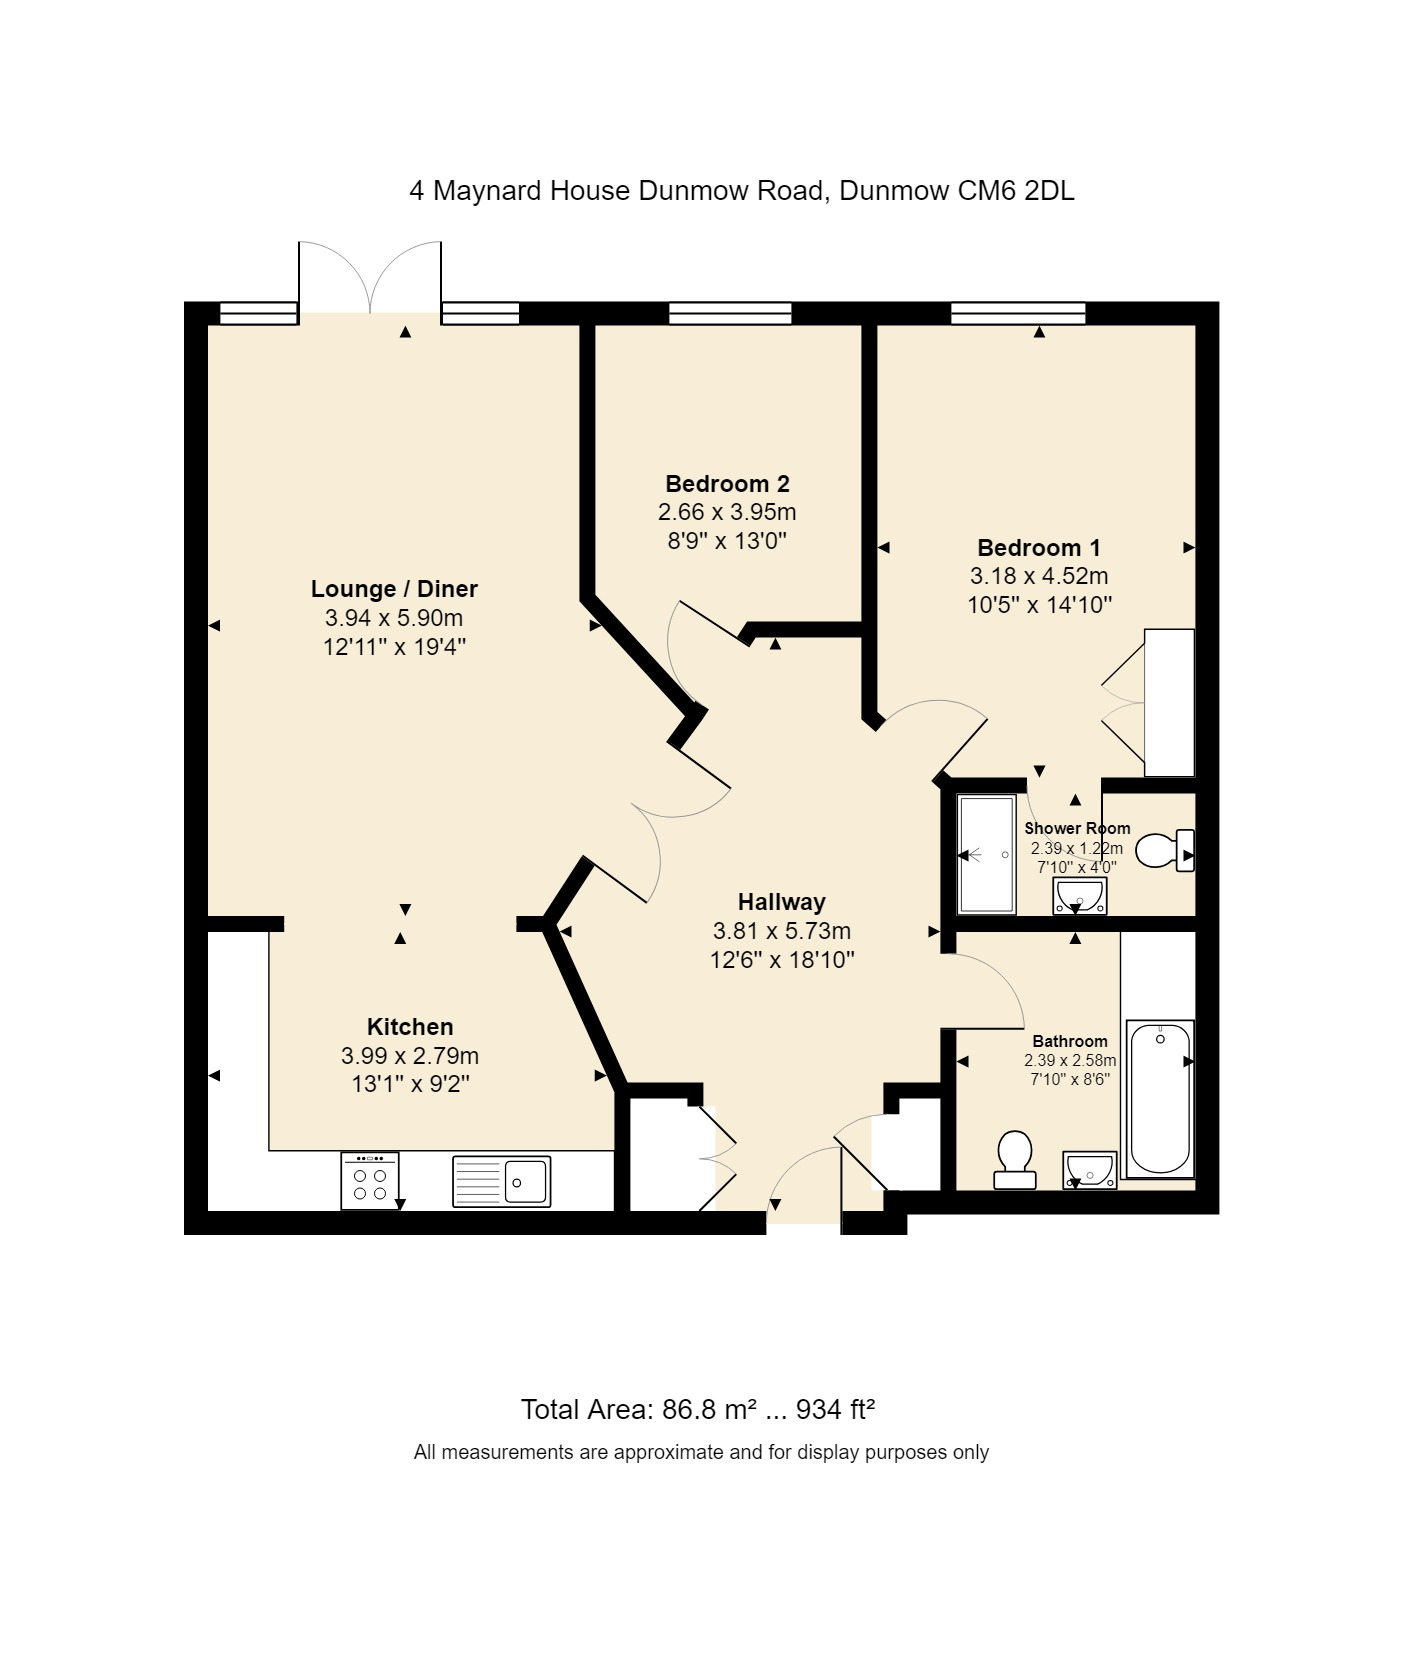 4 Maynard House Floorplan